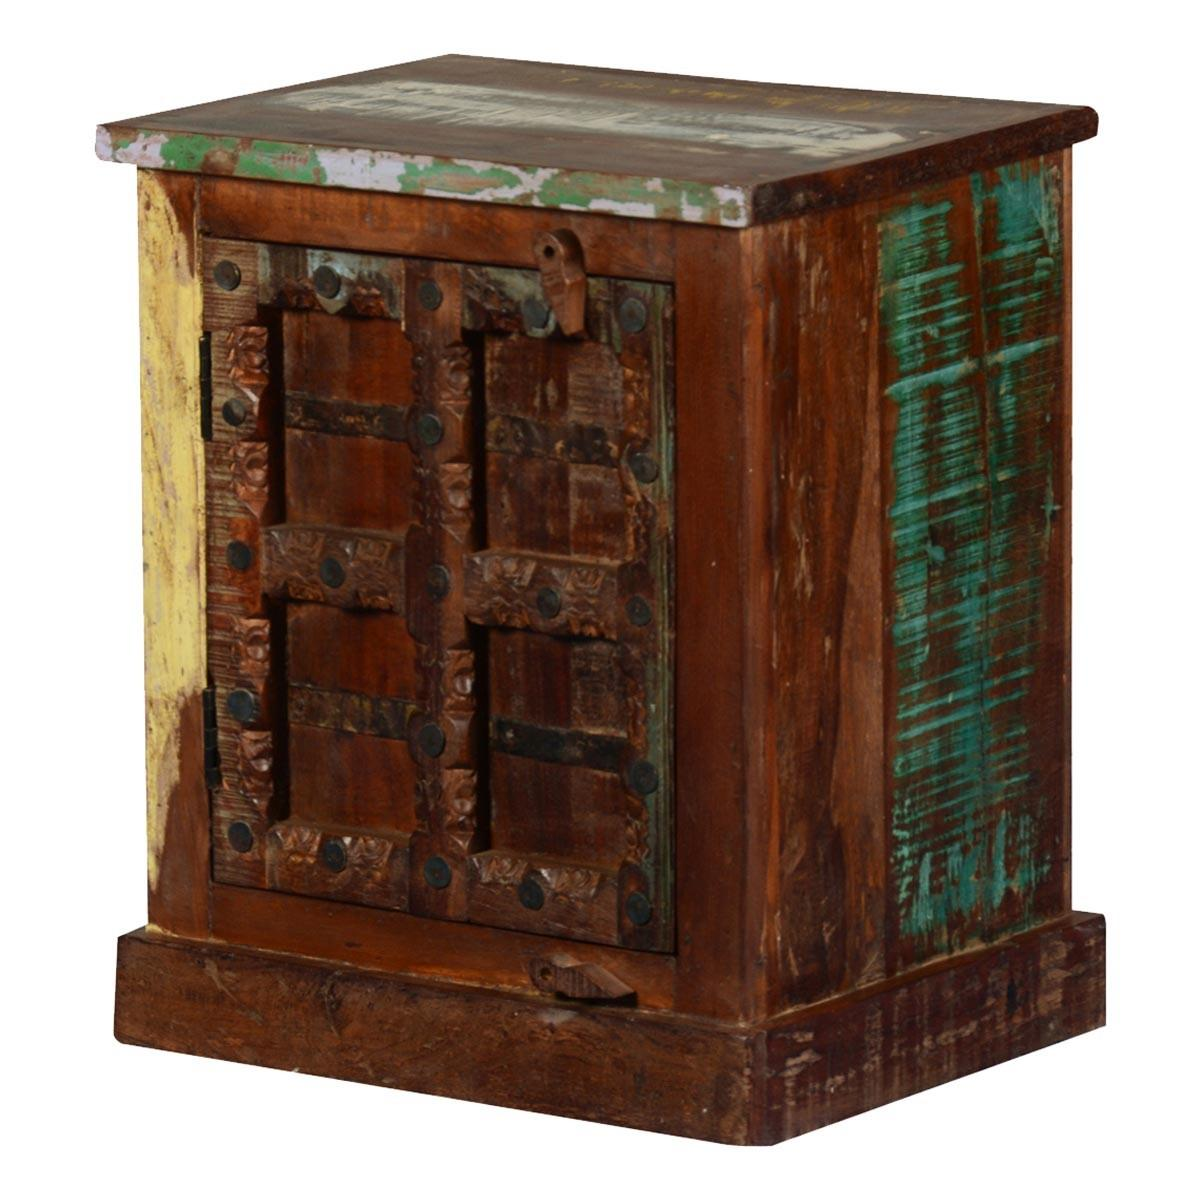 Gothic Rustic Reclaimed Wood Nightstand End Table Cabinet